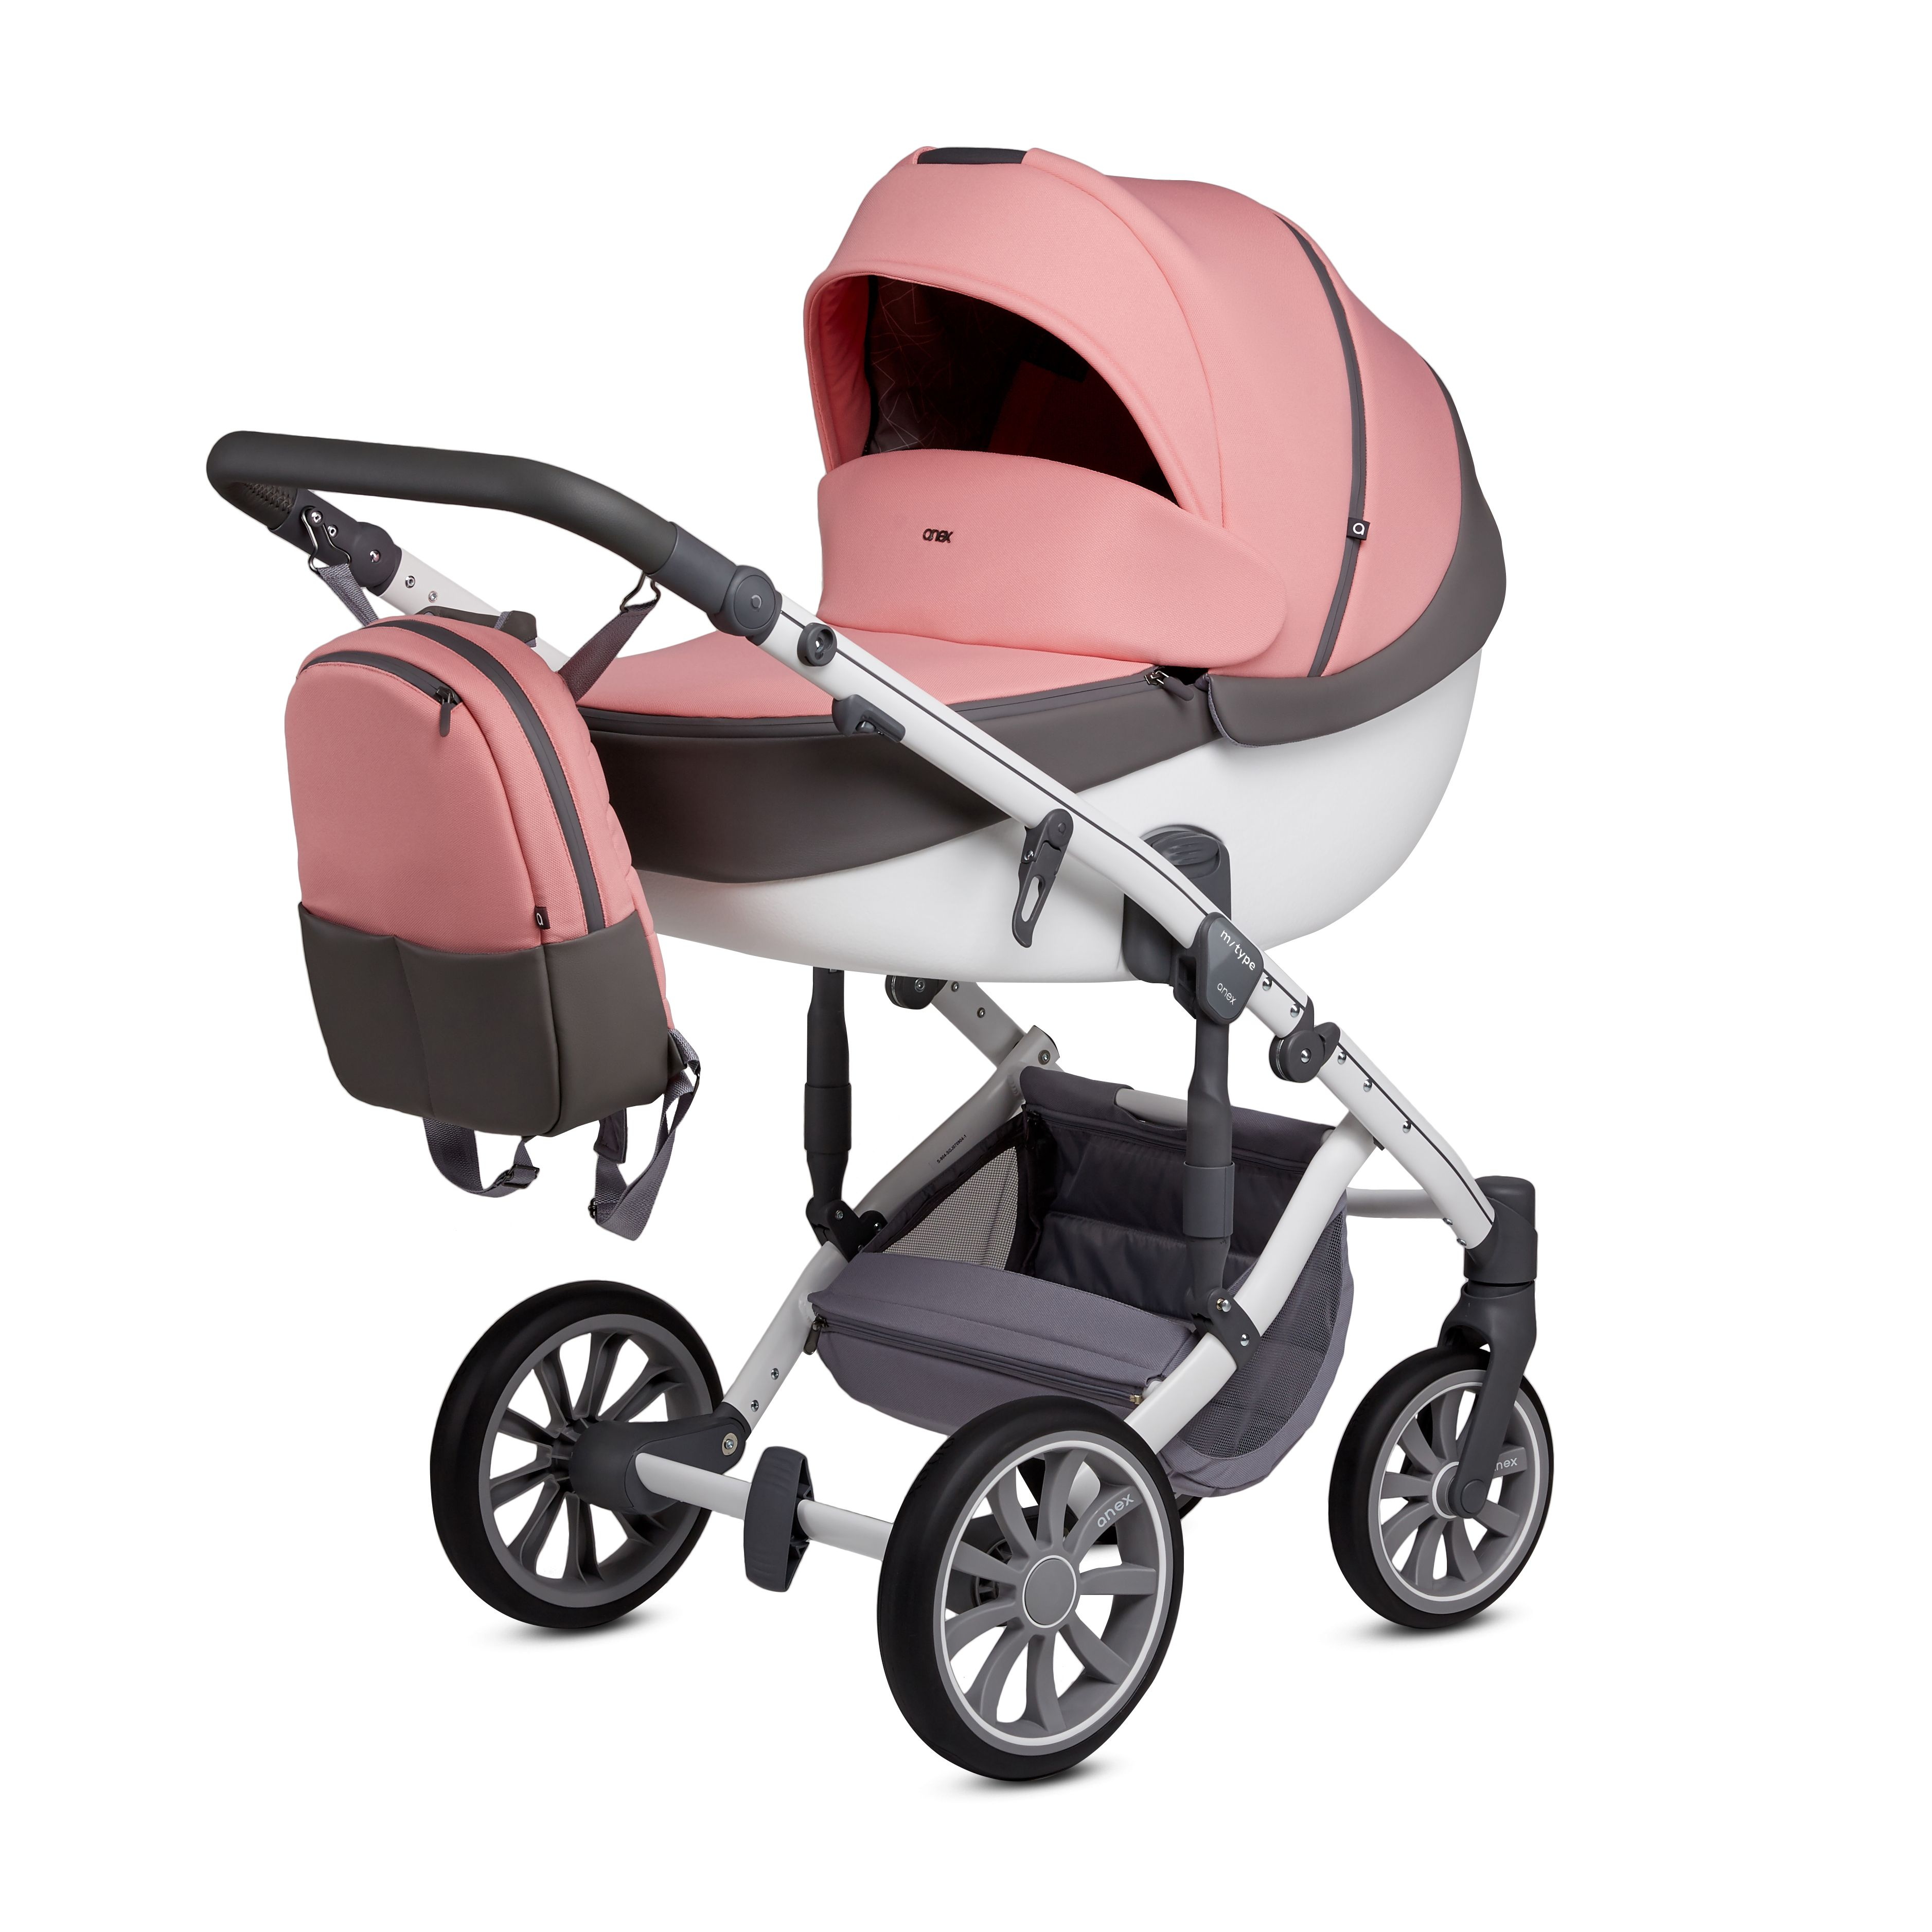 Pin by Artiola on Cute baby in 2020 Baby strollers